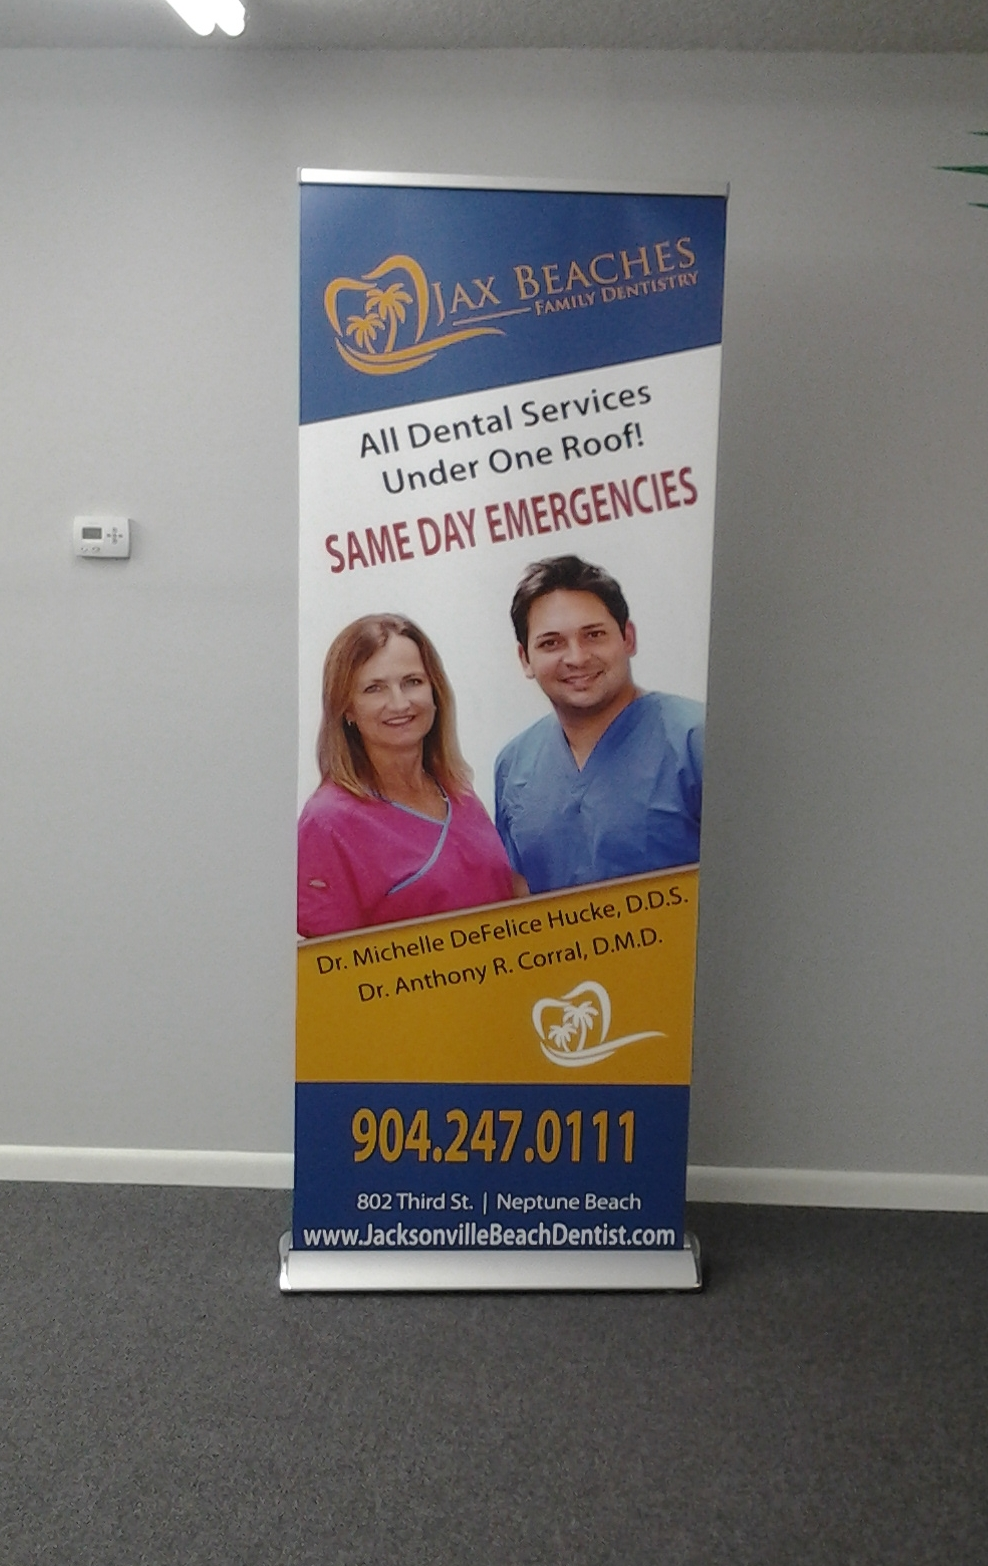 jax beaches family dentisty stand up banner